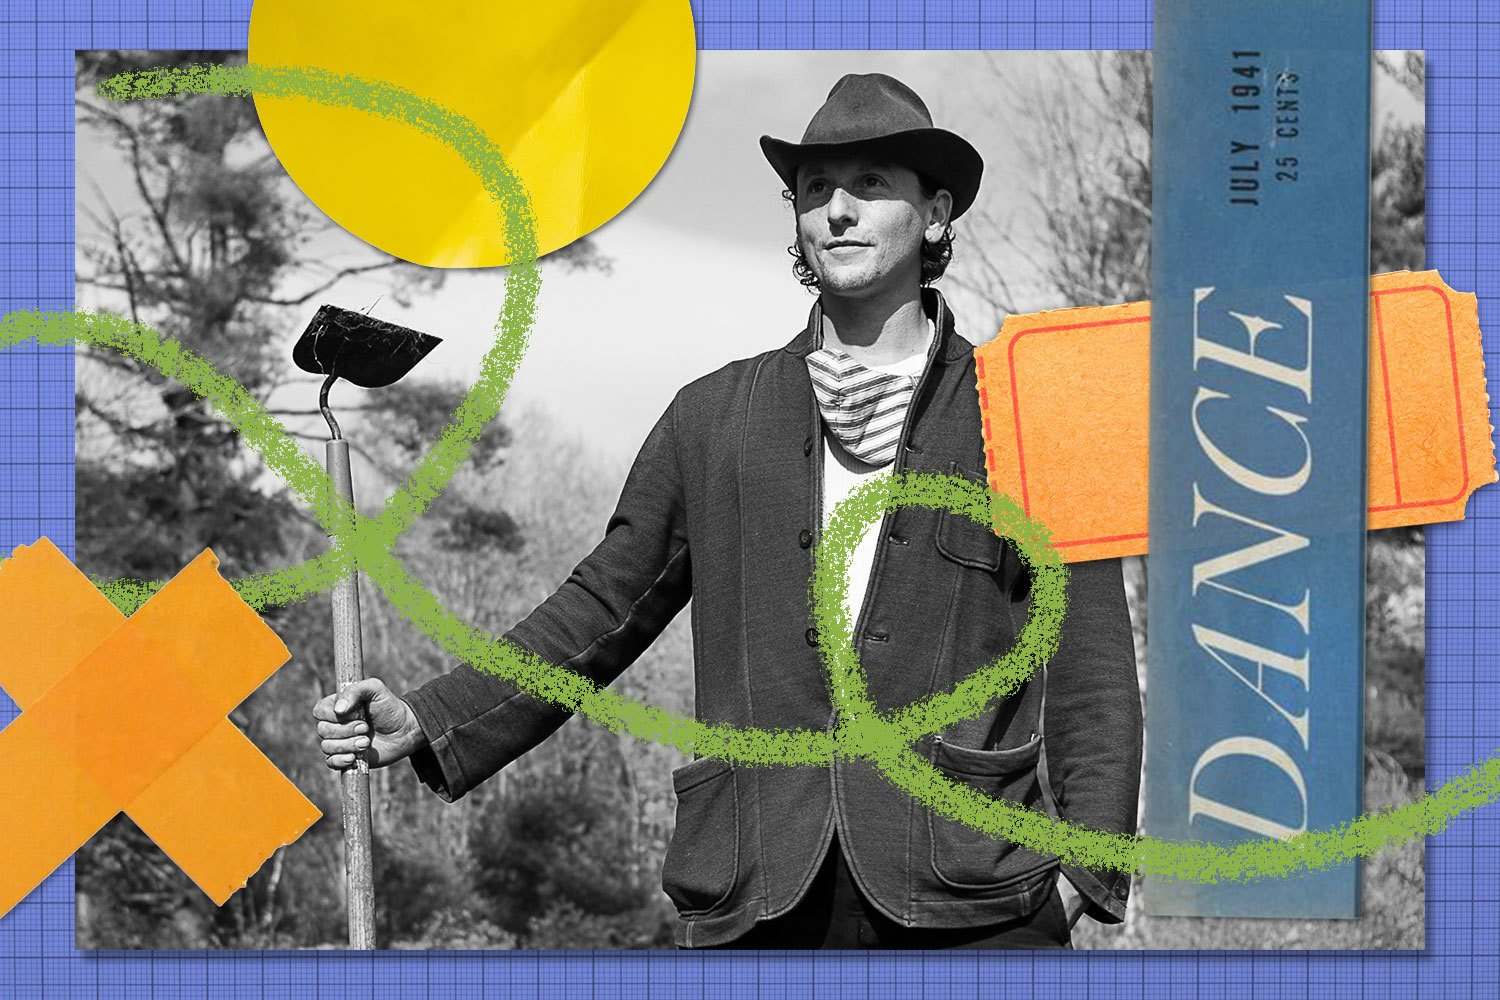 Final Rewrites collage for Adam Weinert with tickets, and old dance show cutout, green doodle, orange tape and yellow label. July 2021